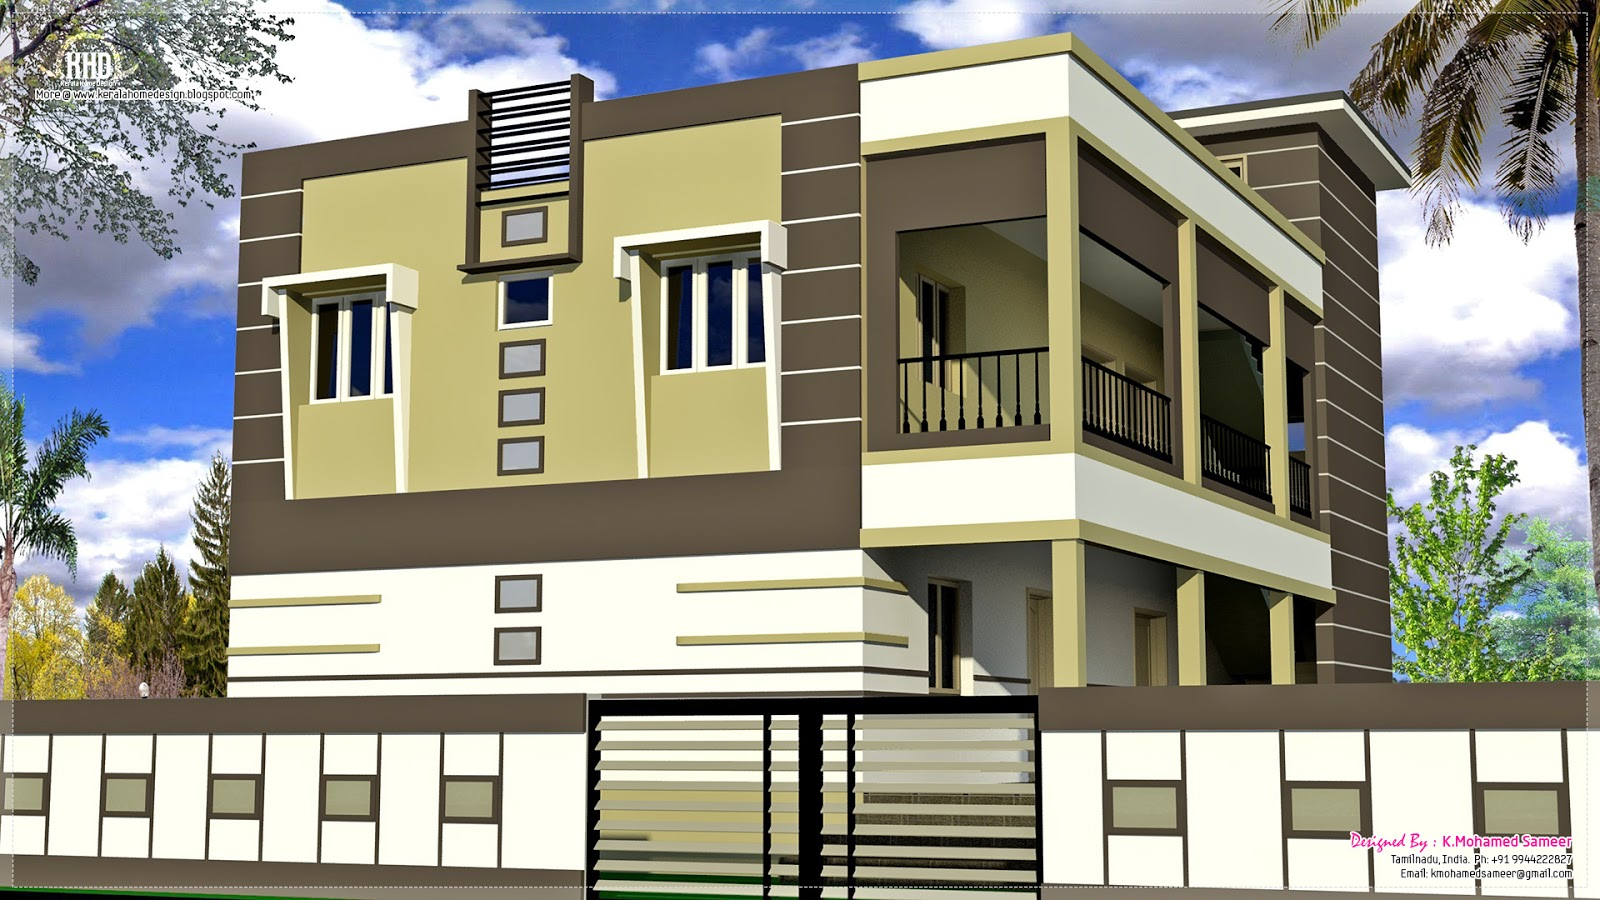 2 south indian house exterior designs house design plans for Exterior house design ideas